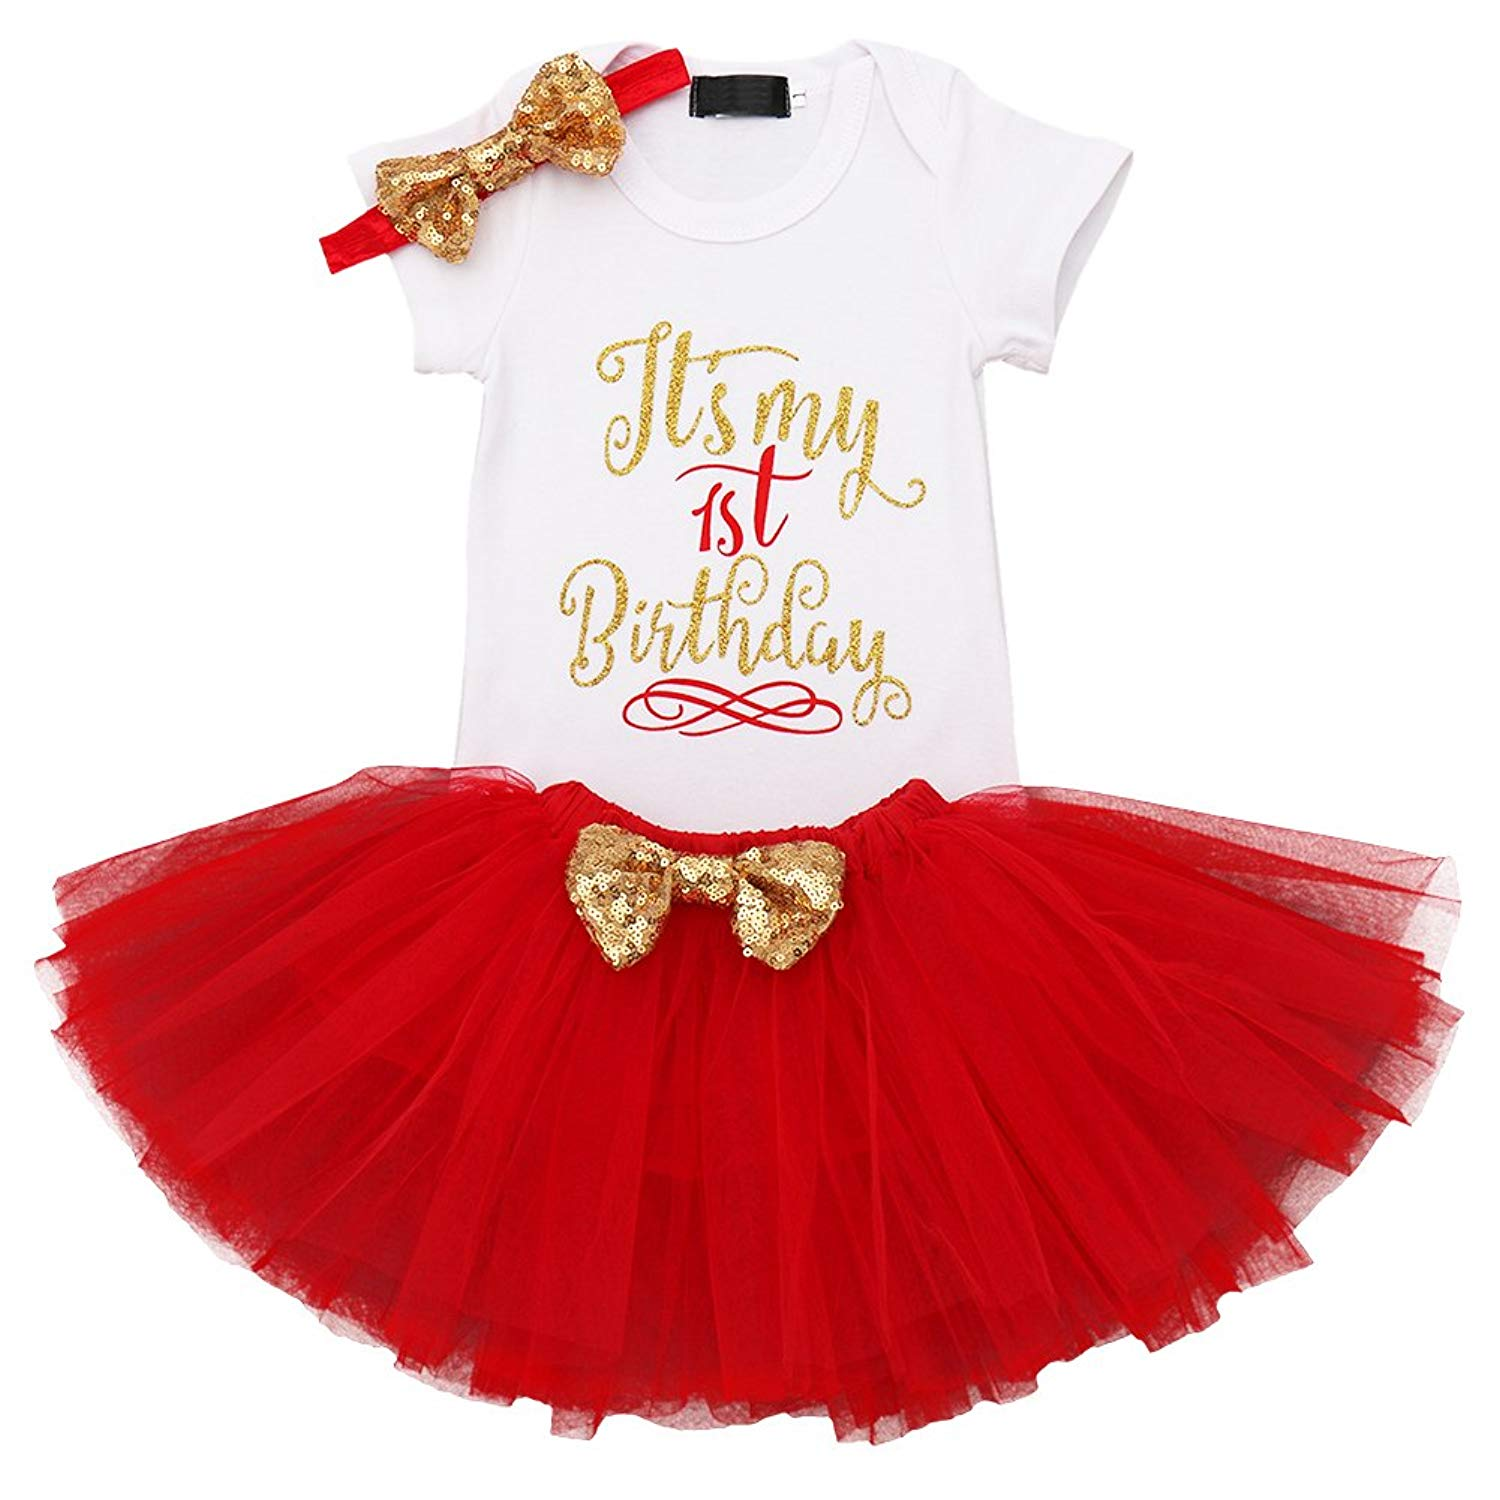 afd412c3082 Get Quotations · It s My 1st Birthday Baby Girl Outfits Romper Tutu Skirt  Glittering Sequin Headband 3PCS Set